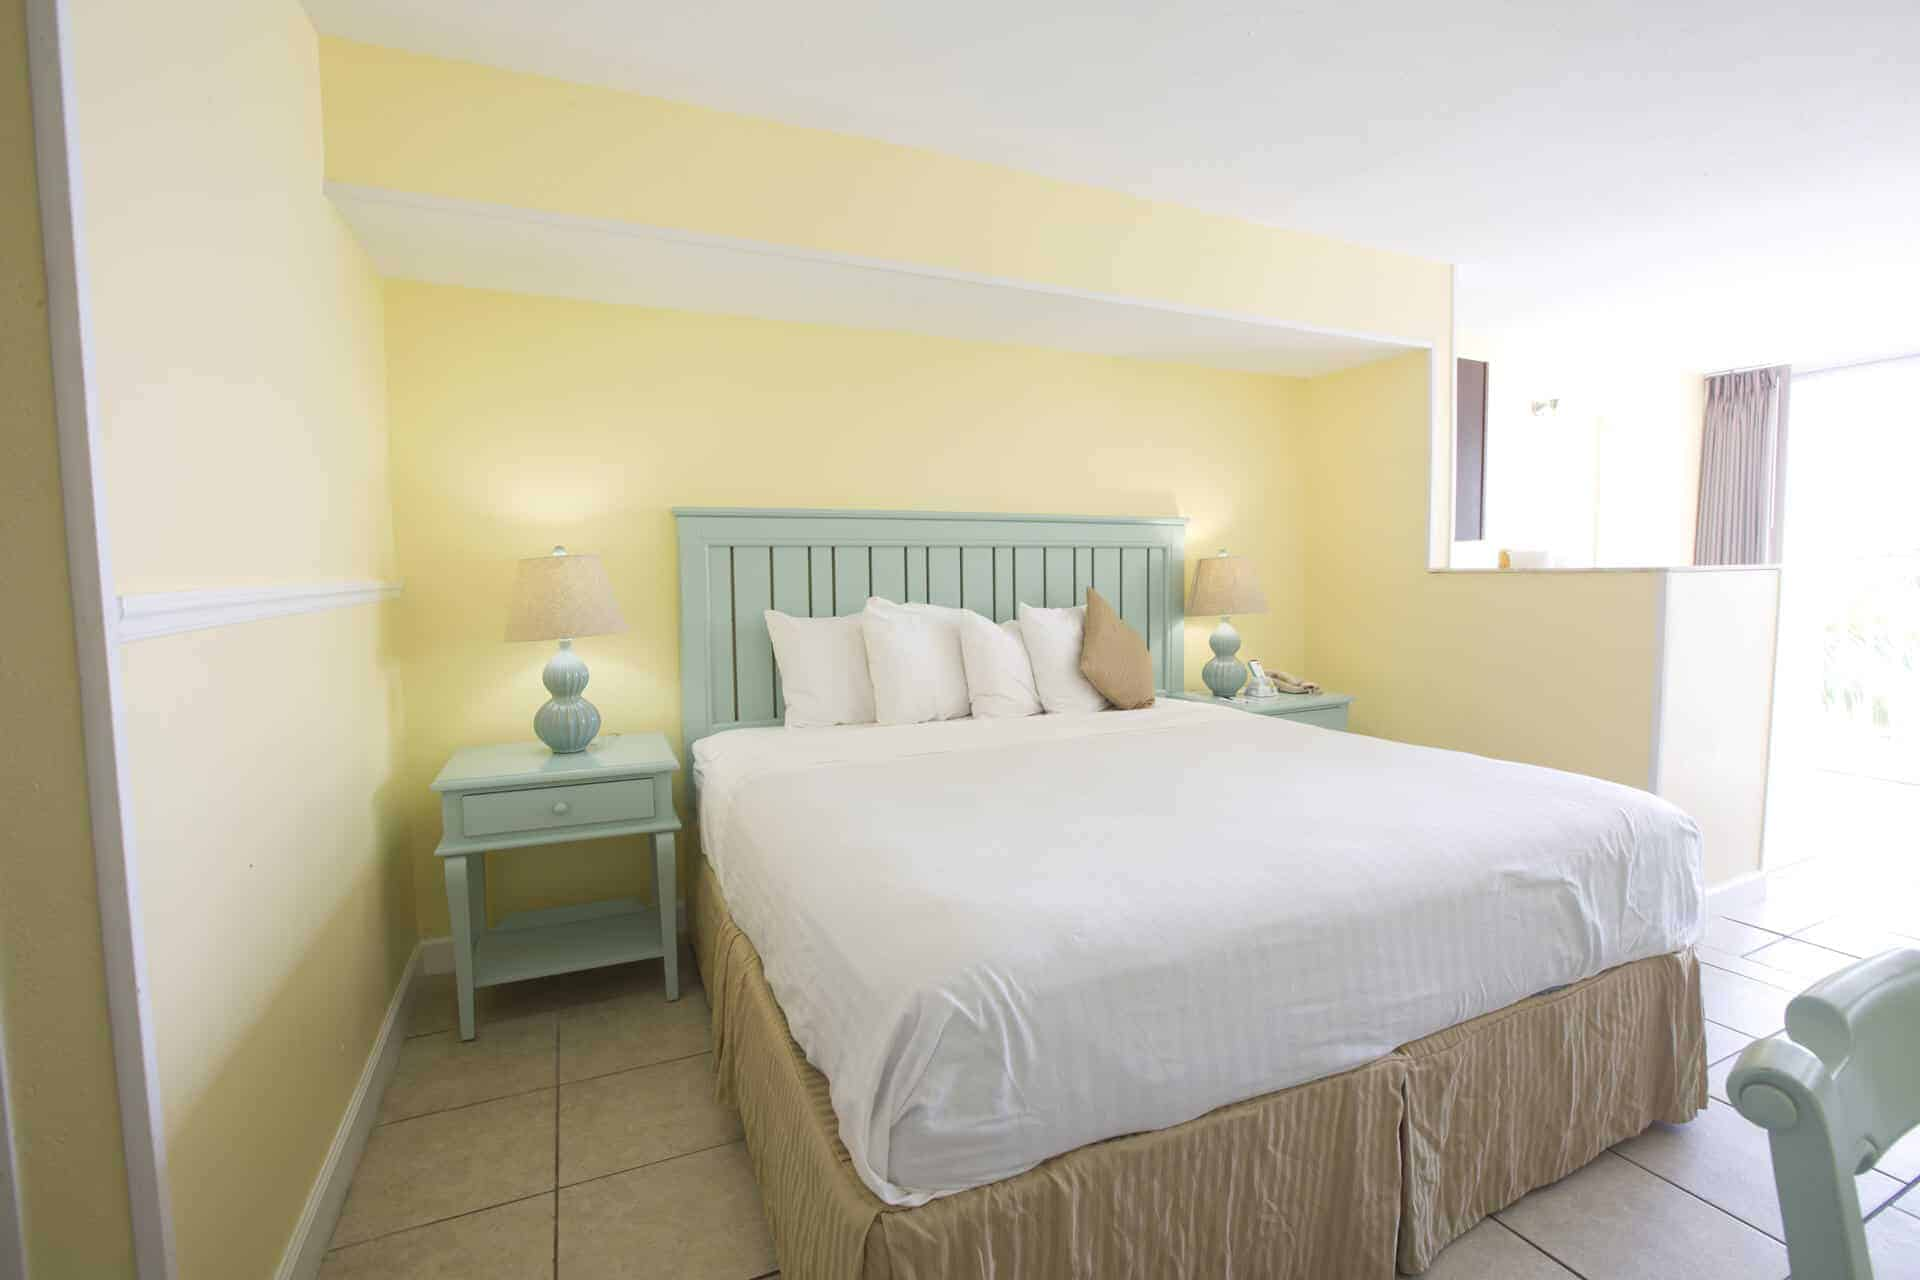 Studio Beachfront Room King Size Bed | Rooms Available | Fort Myers Beach